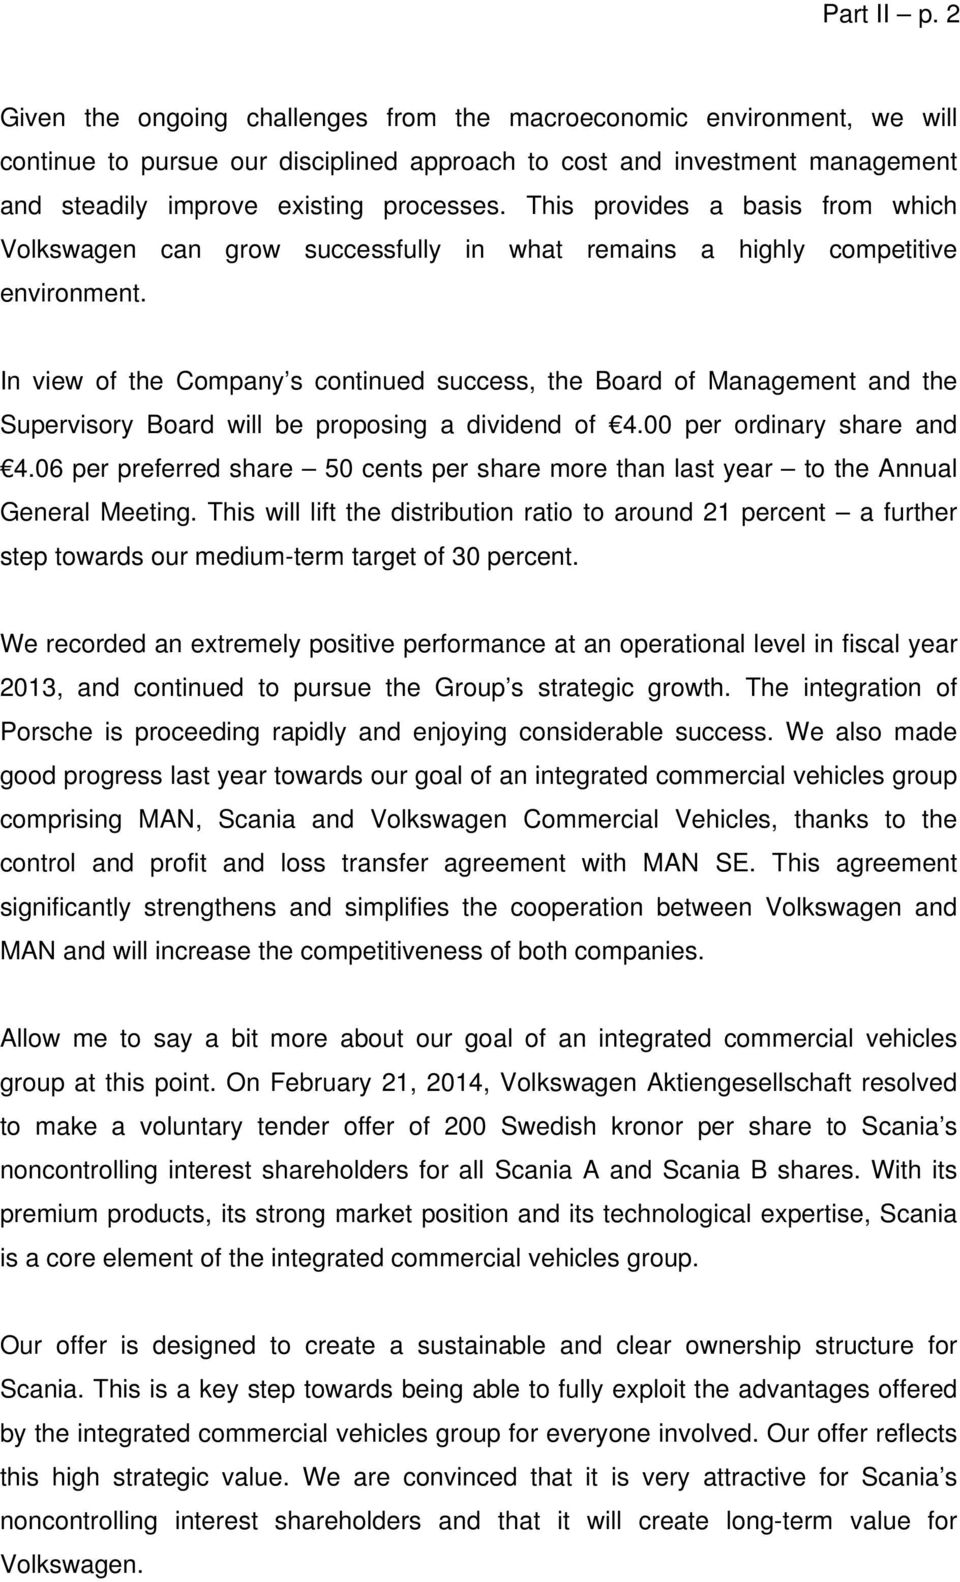 This provides a basis from which Volkswagen can grow successfully in what remains a highly competitive environment.